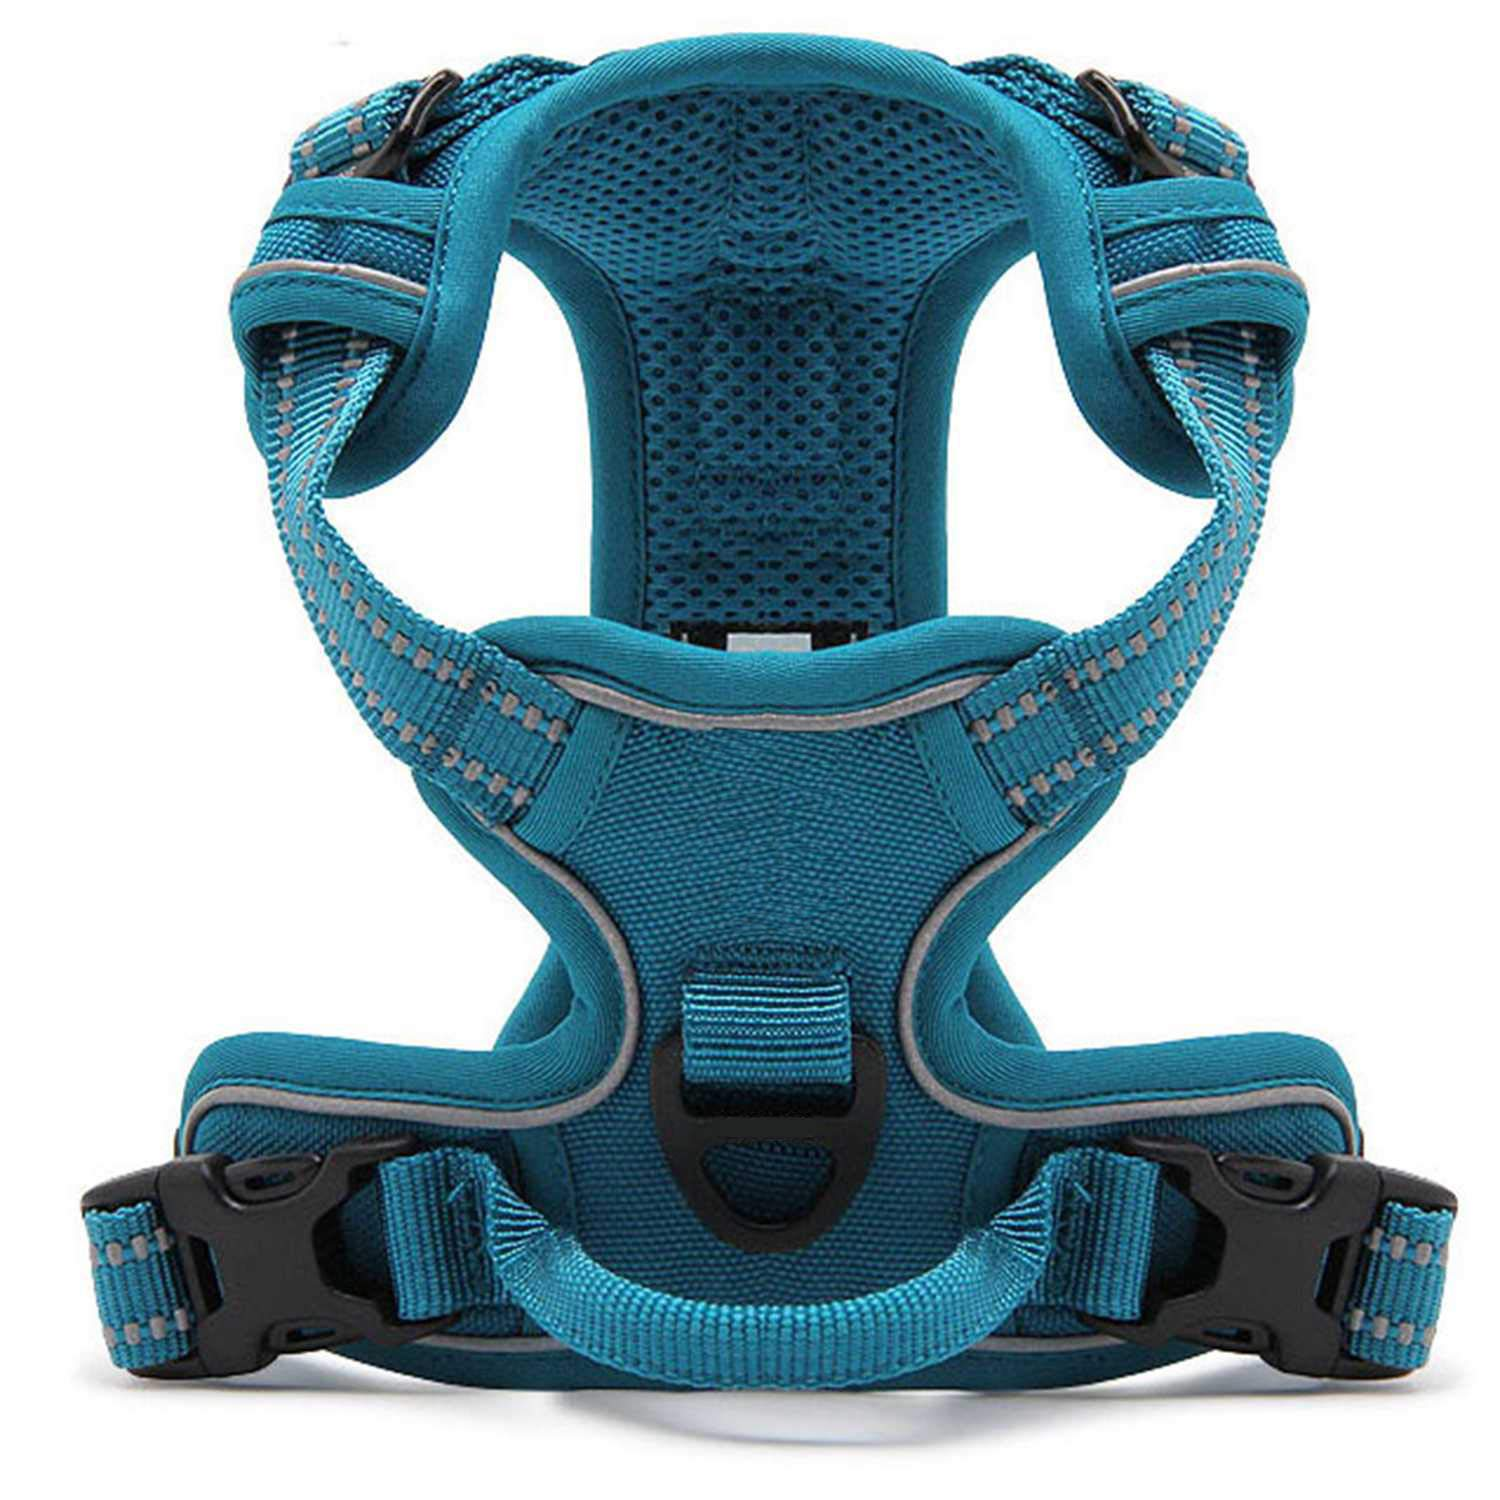 Kaka mall Pet Dog Cats Vest harness No Pull 3M Reflective Breathable Padded Mesh Adjustable Double Zinc-alloy D-ring for Outdoor Adventure (bluee, XS)